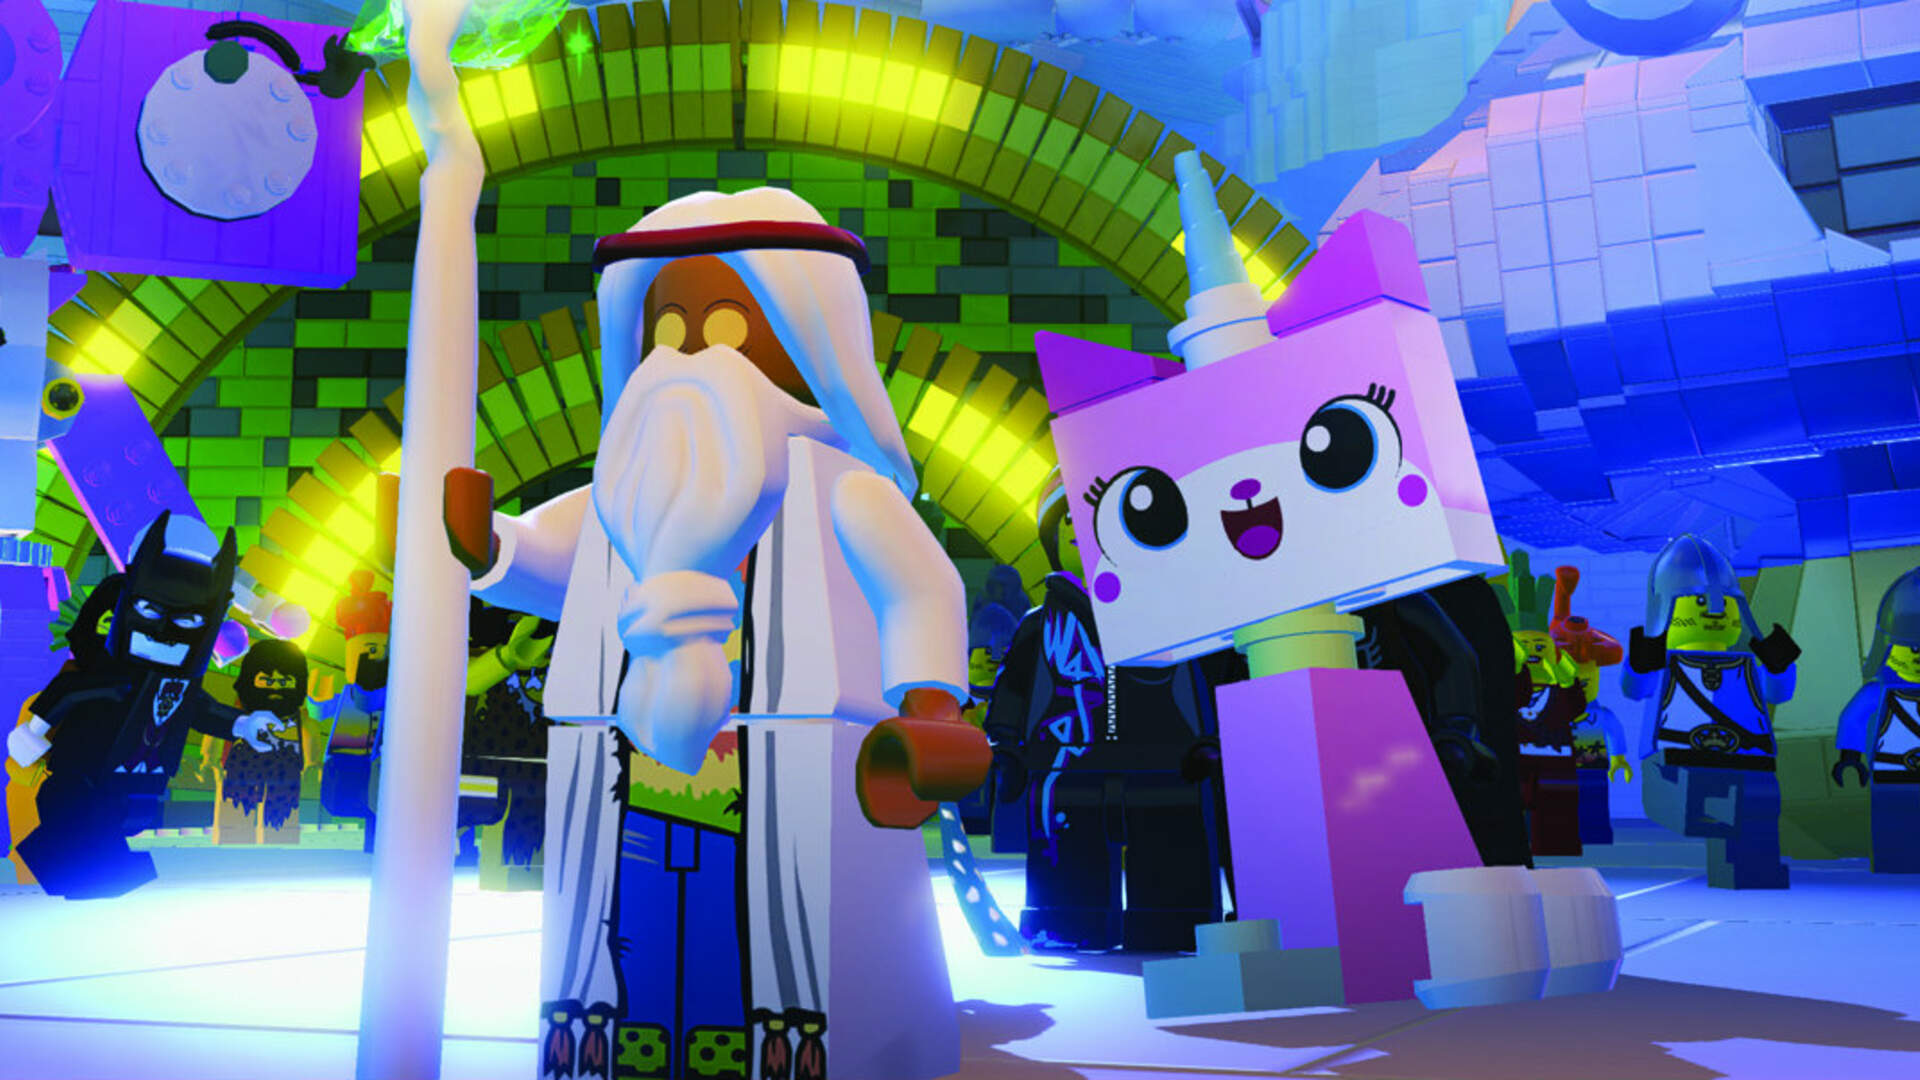 The Lego Movie Videogame Xbox 360 Review: We've Been Here Before, But It's Still Fun